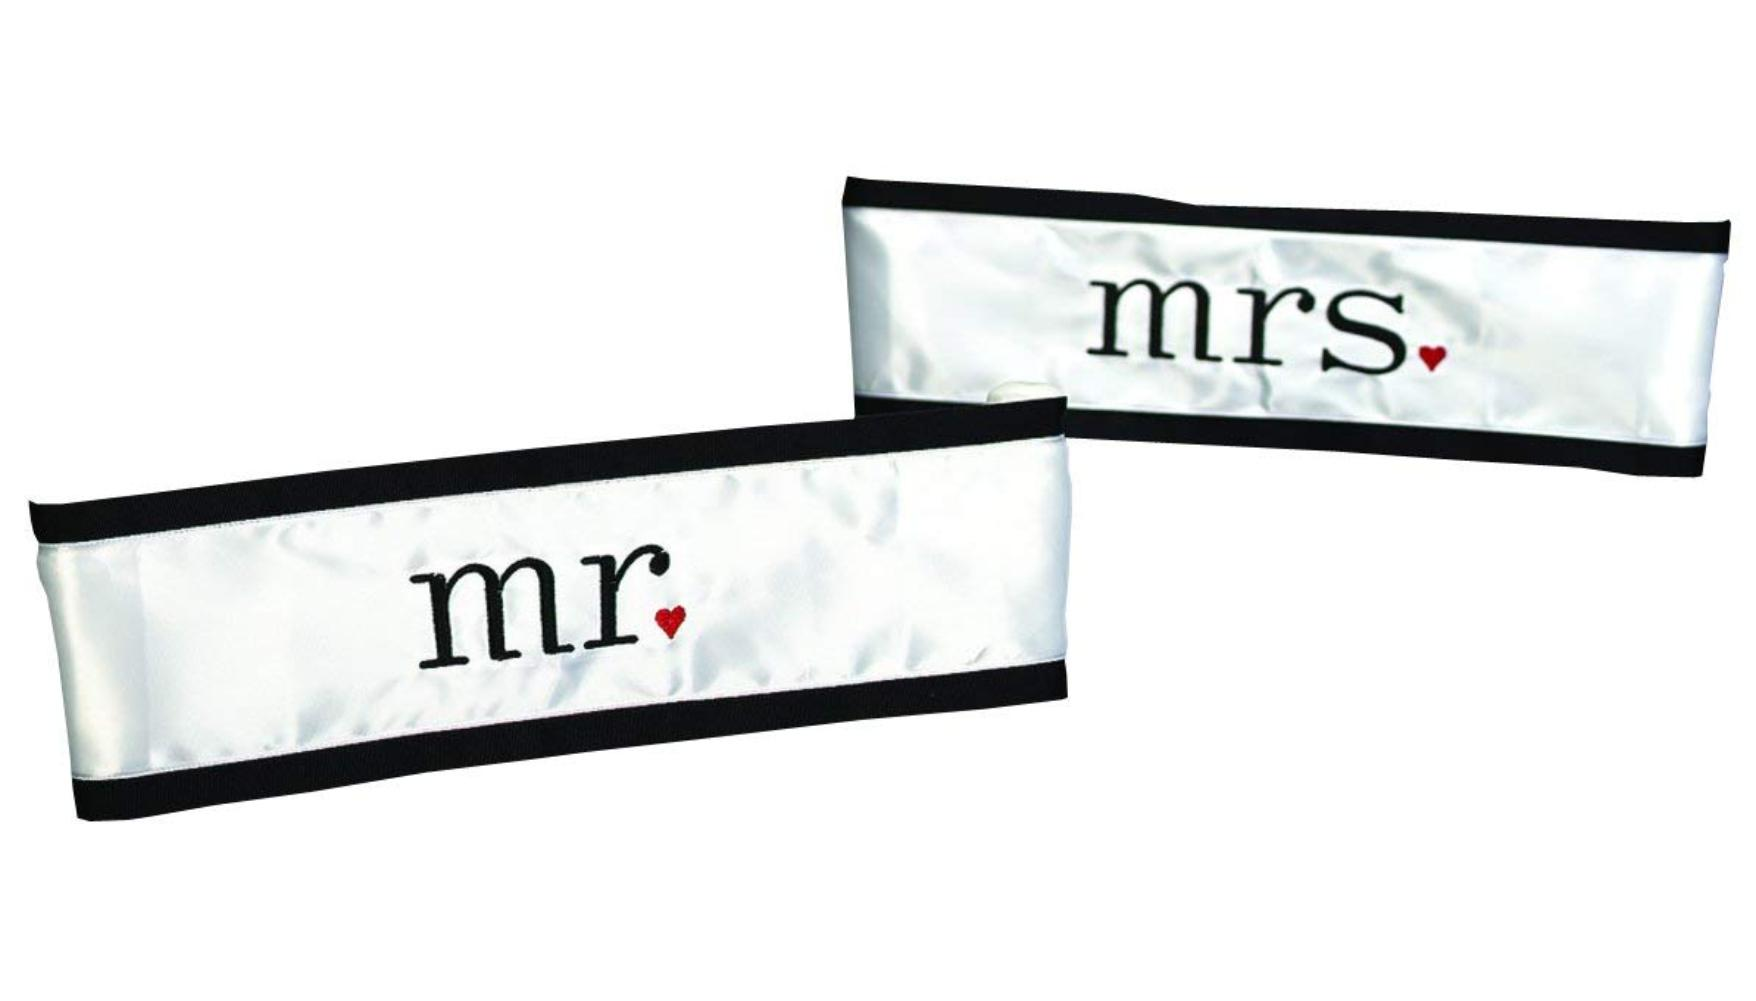 wedding chair sash accessories industrial lounge hortense b hewitt together at last sashes mr and mrs set of 2 satin by walmart com